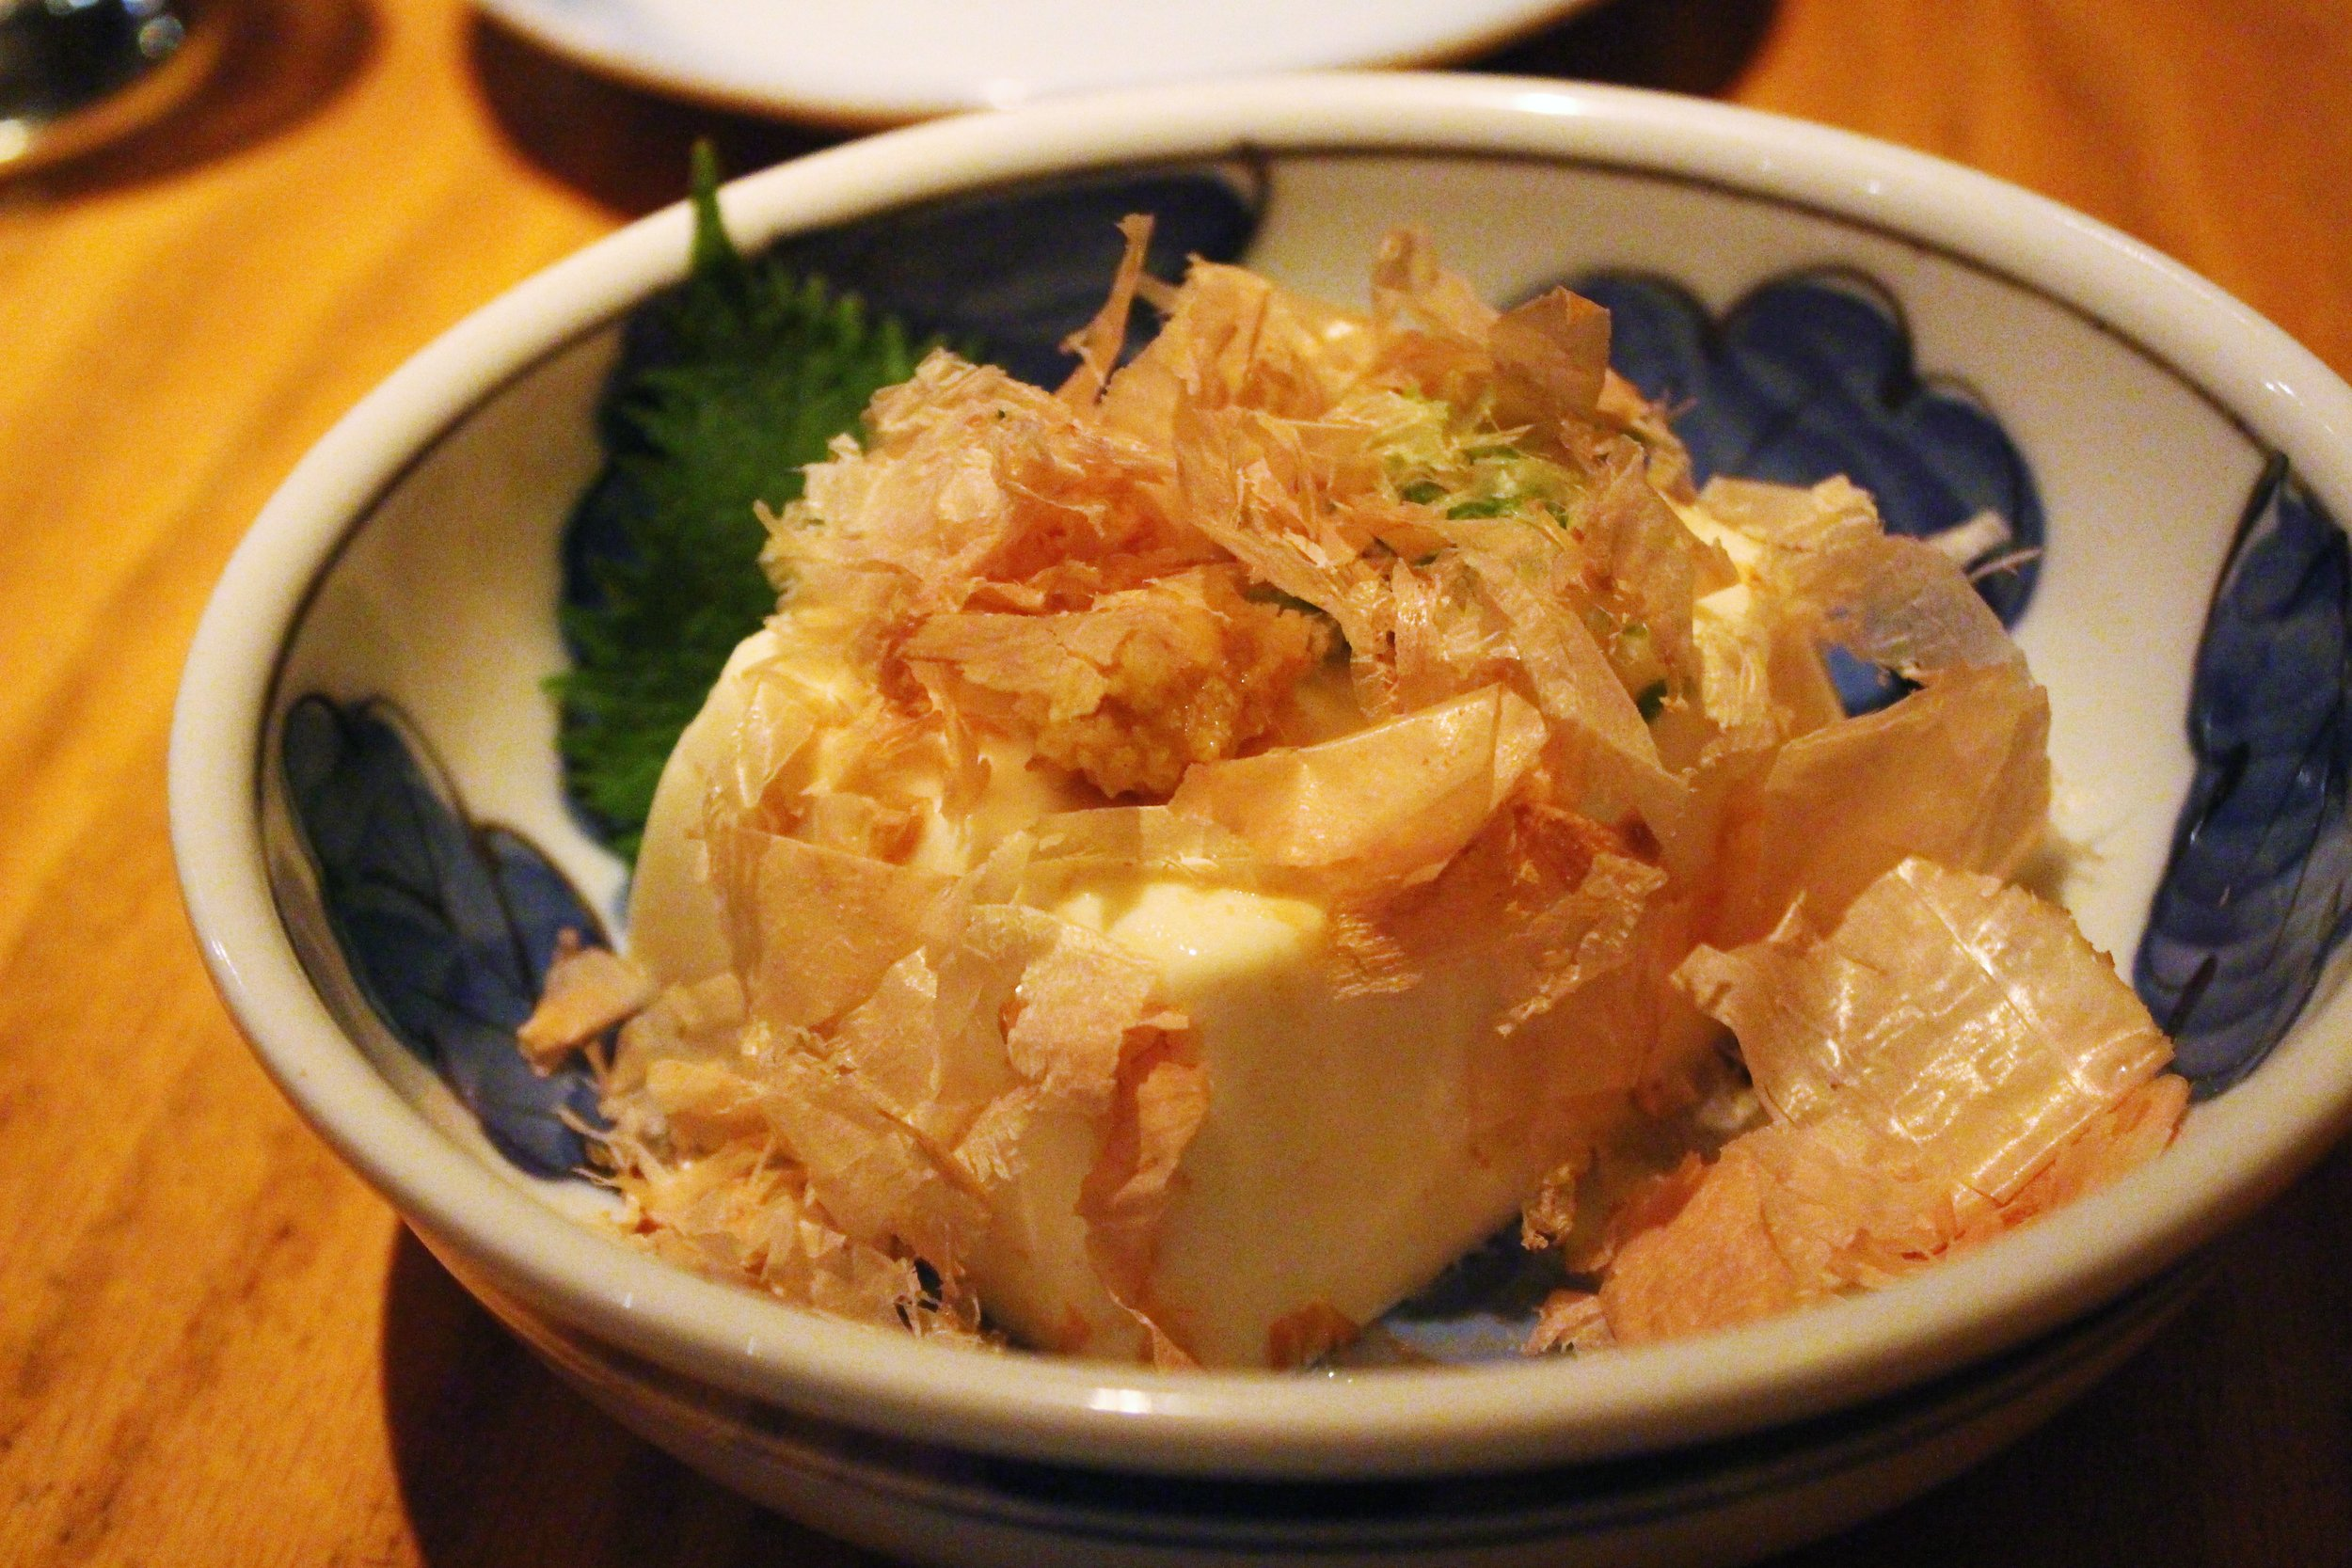 Yakko: Chilled tofu with grated ginger, scallions, and bonito flakes